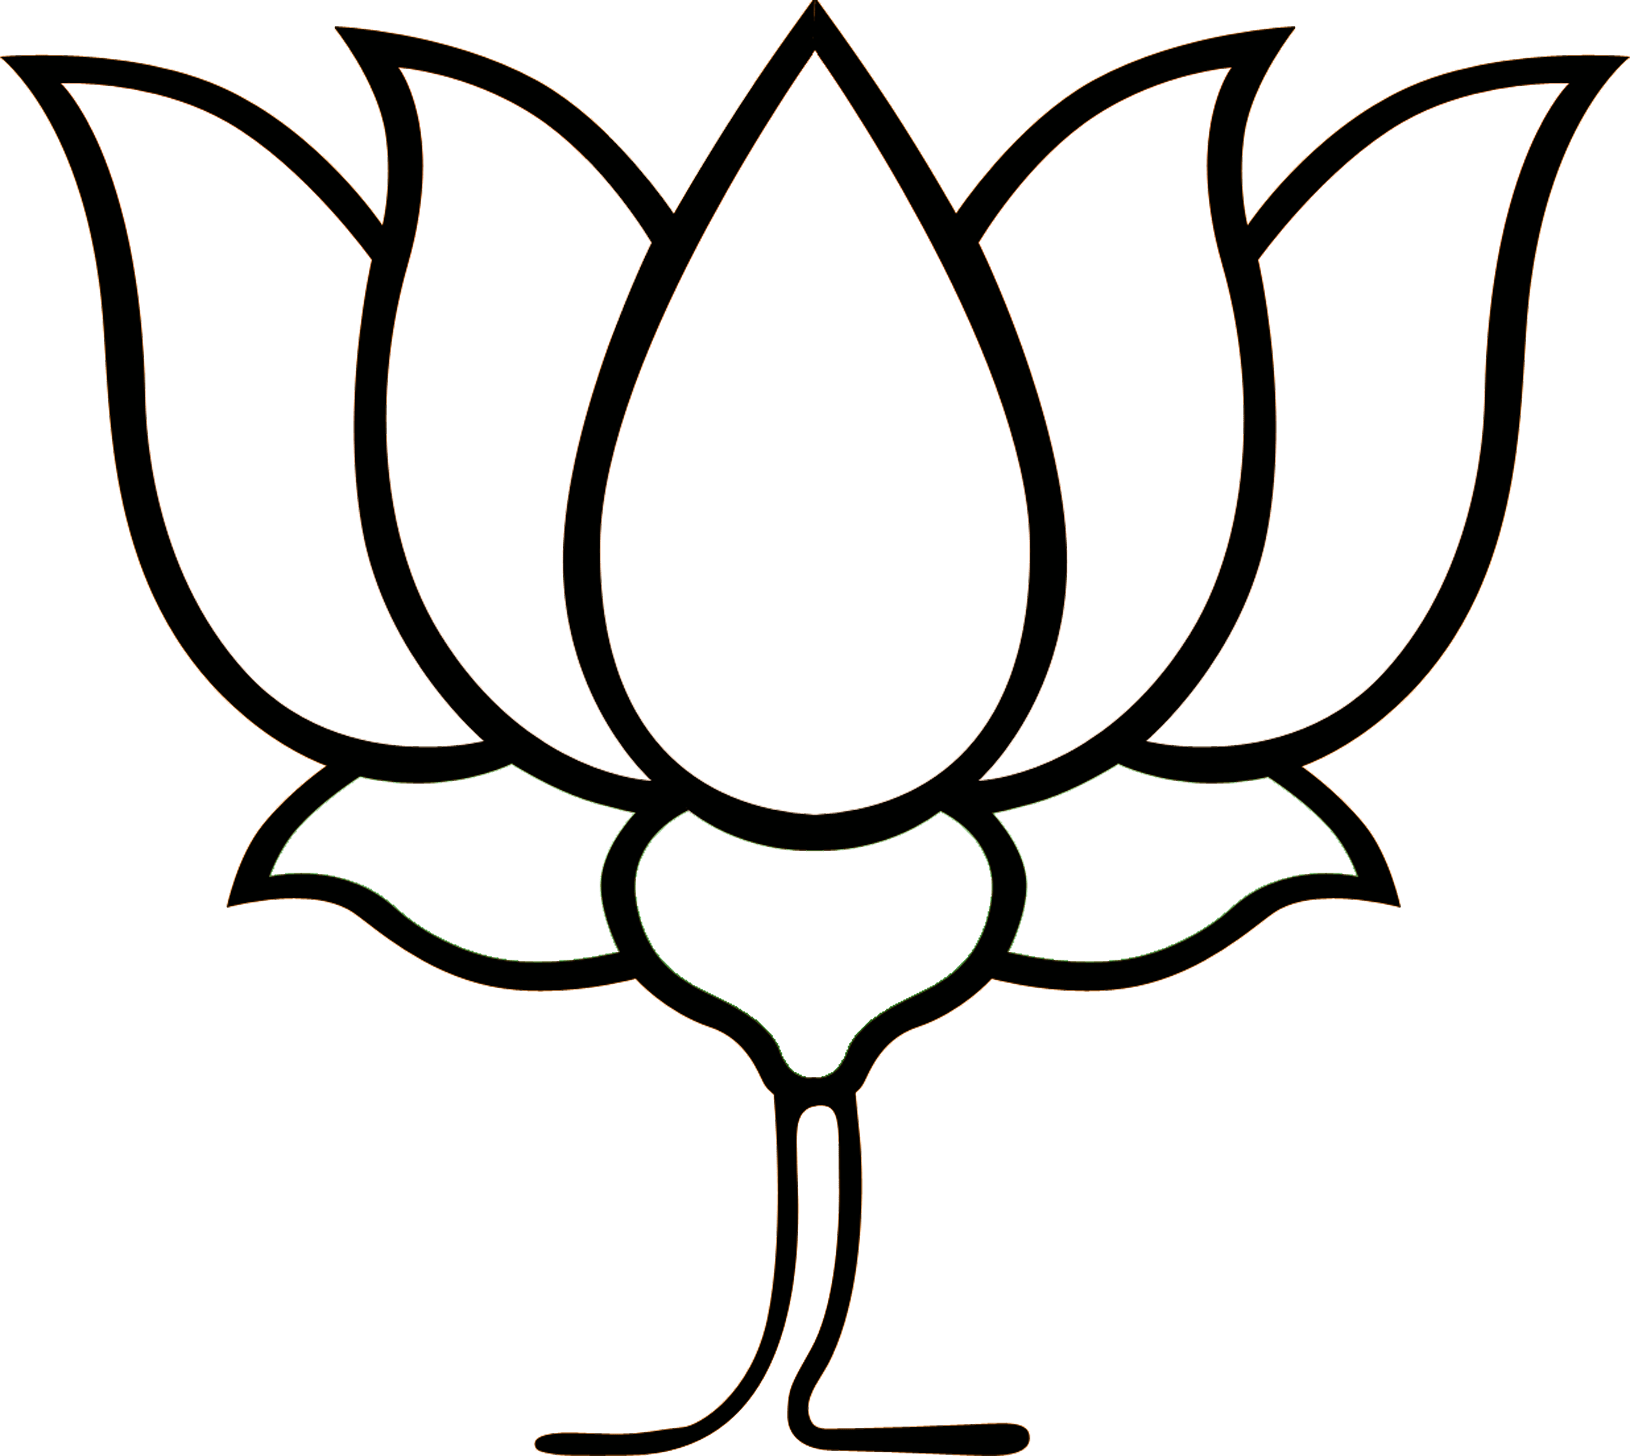 Lotus Clipart Logo Bjp Lotus Logo Bjp Transparent Free For Download On Webstockreview 2020